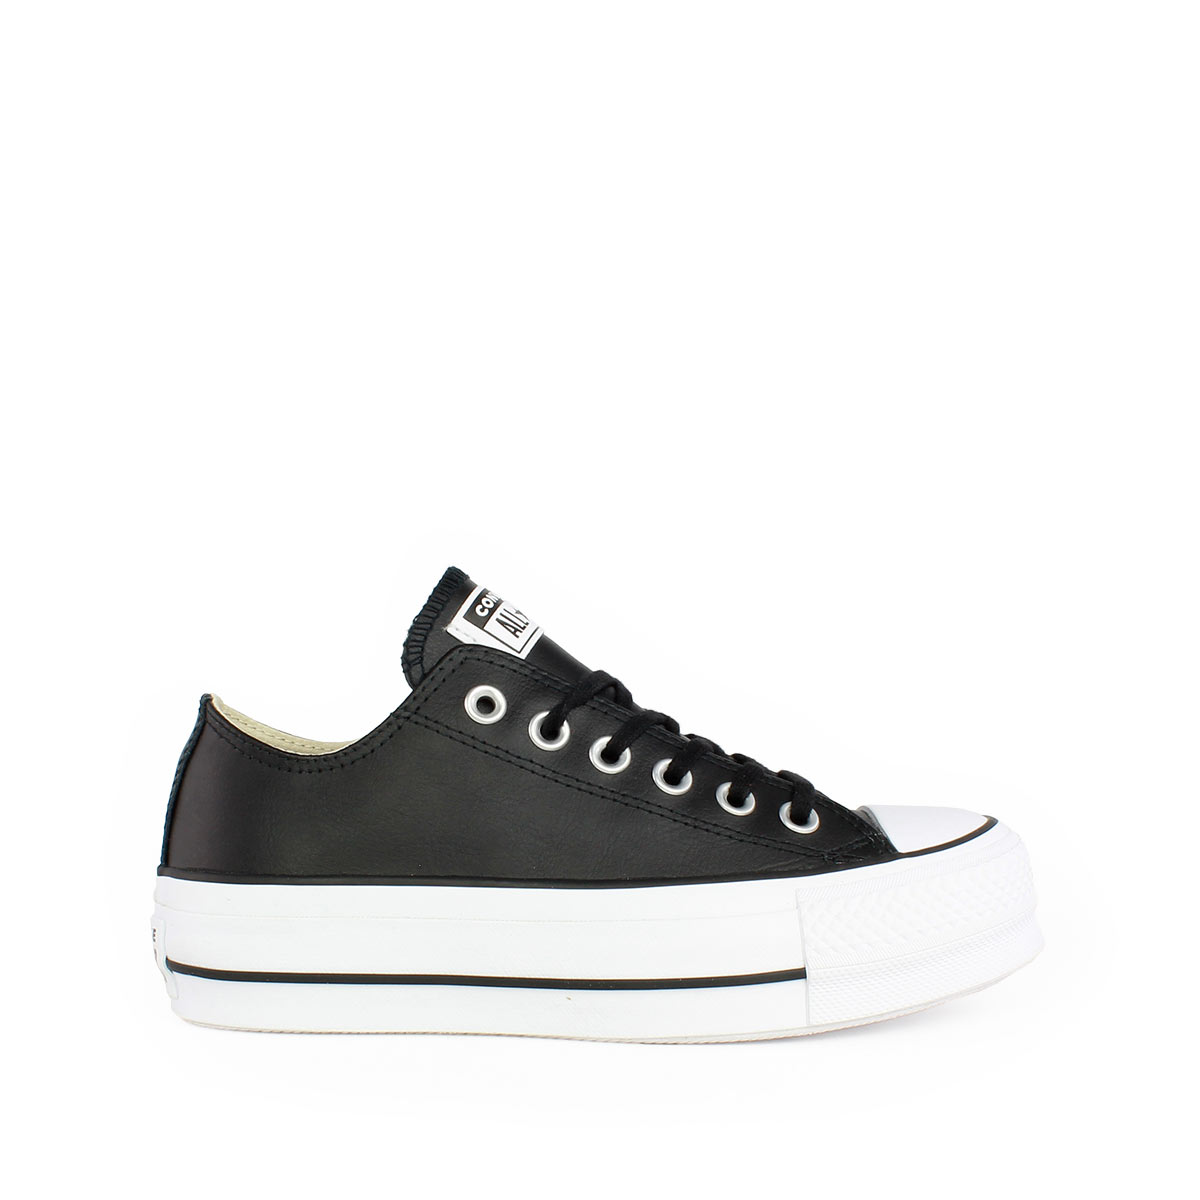 58c5b6d8d92 Converse Chuck Taylor All Star Lift Clean Leather Low Top 561681C ...